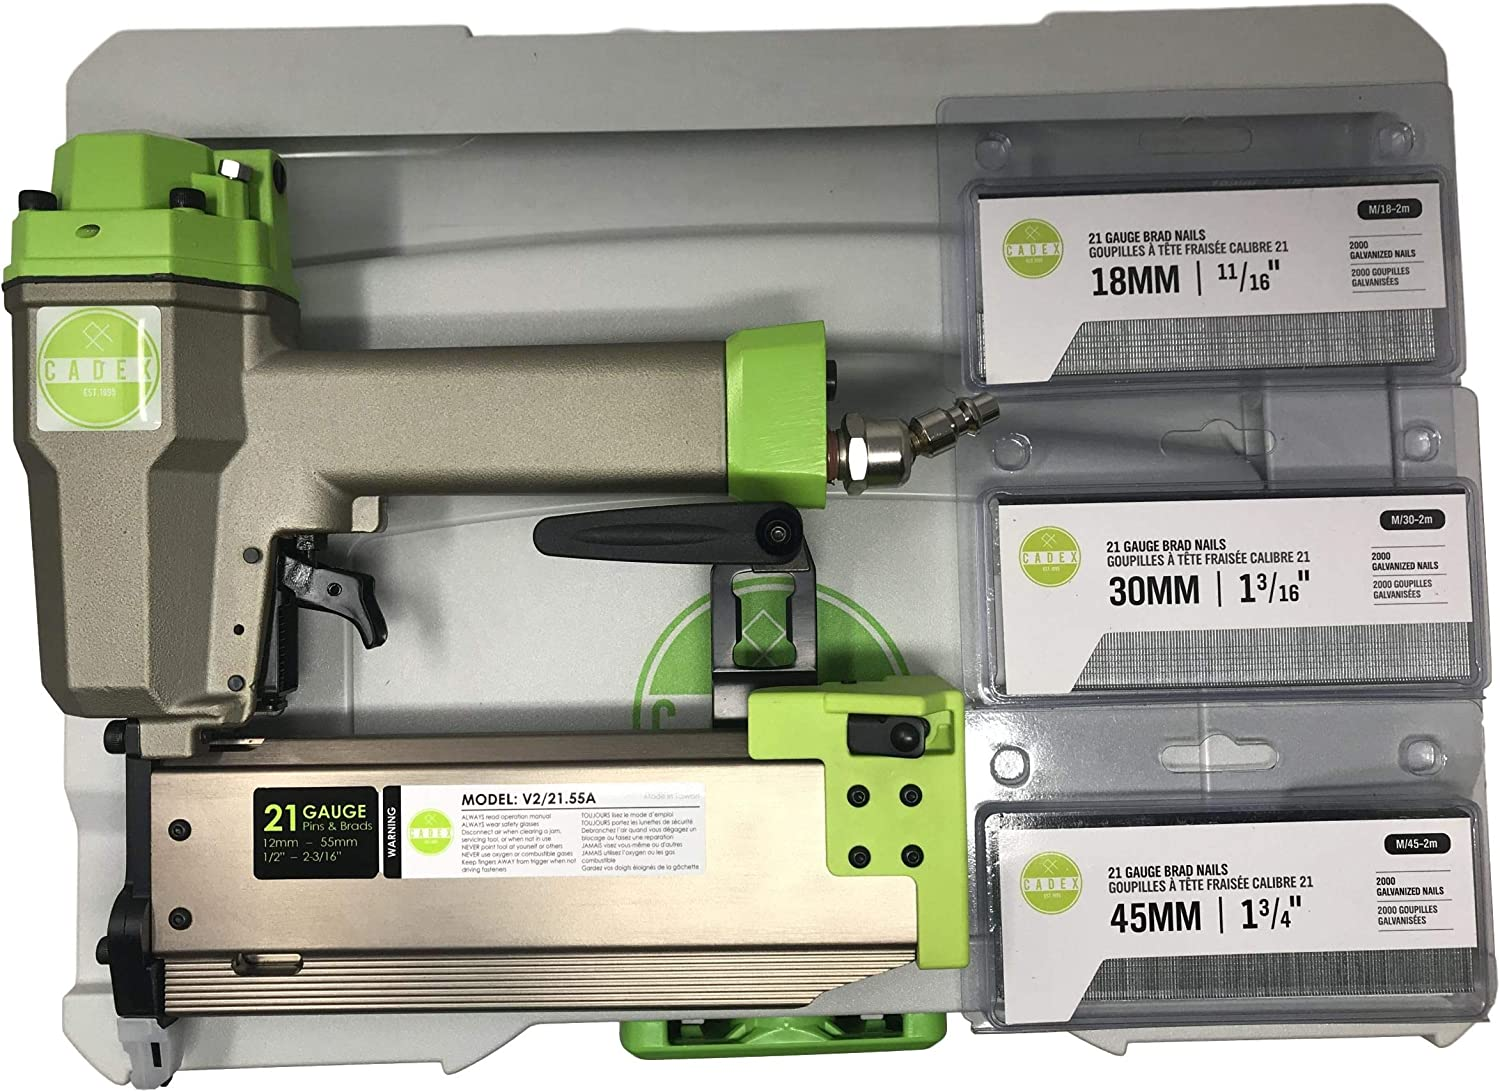 Cadex V2 21.55A 21 Gauge Pinner Brad Pin Nailer 1 2 – 2-3 16 Kit With Reverse Contact Safety, AND WITH SYSTAINER CASE 2,000EA 18MM, 30MM, AND 45MM Slight Headed Brads